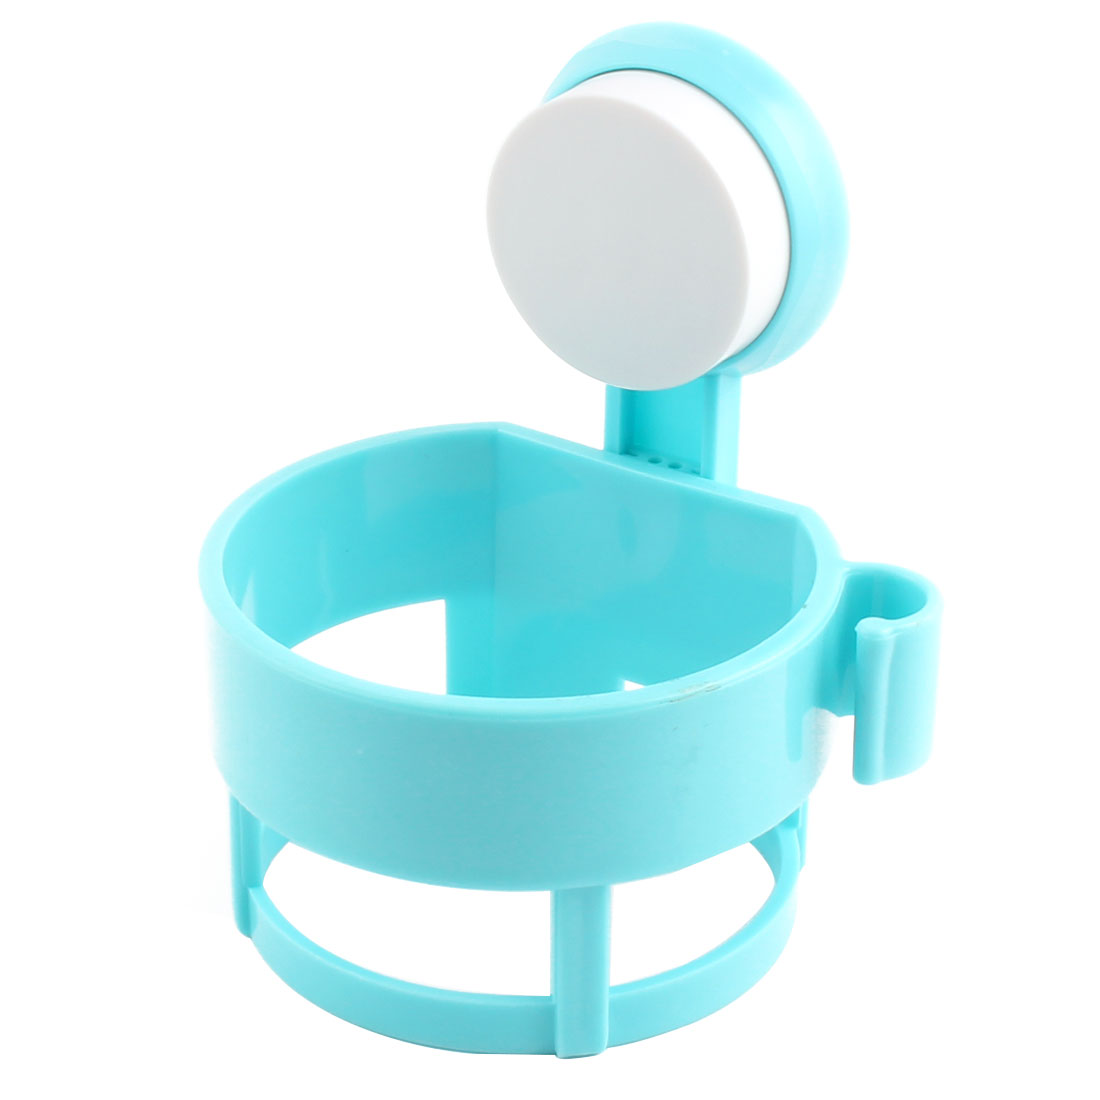 Home Bathroom Plastic Wall Suction Cup Hair Blow Dryer Holder Hanger Stand Blue